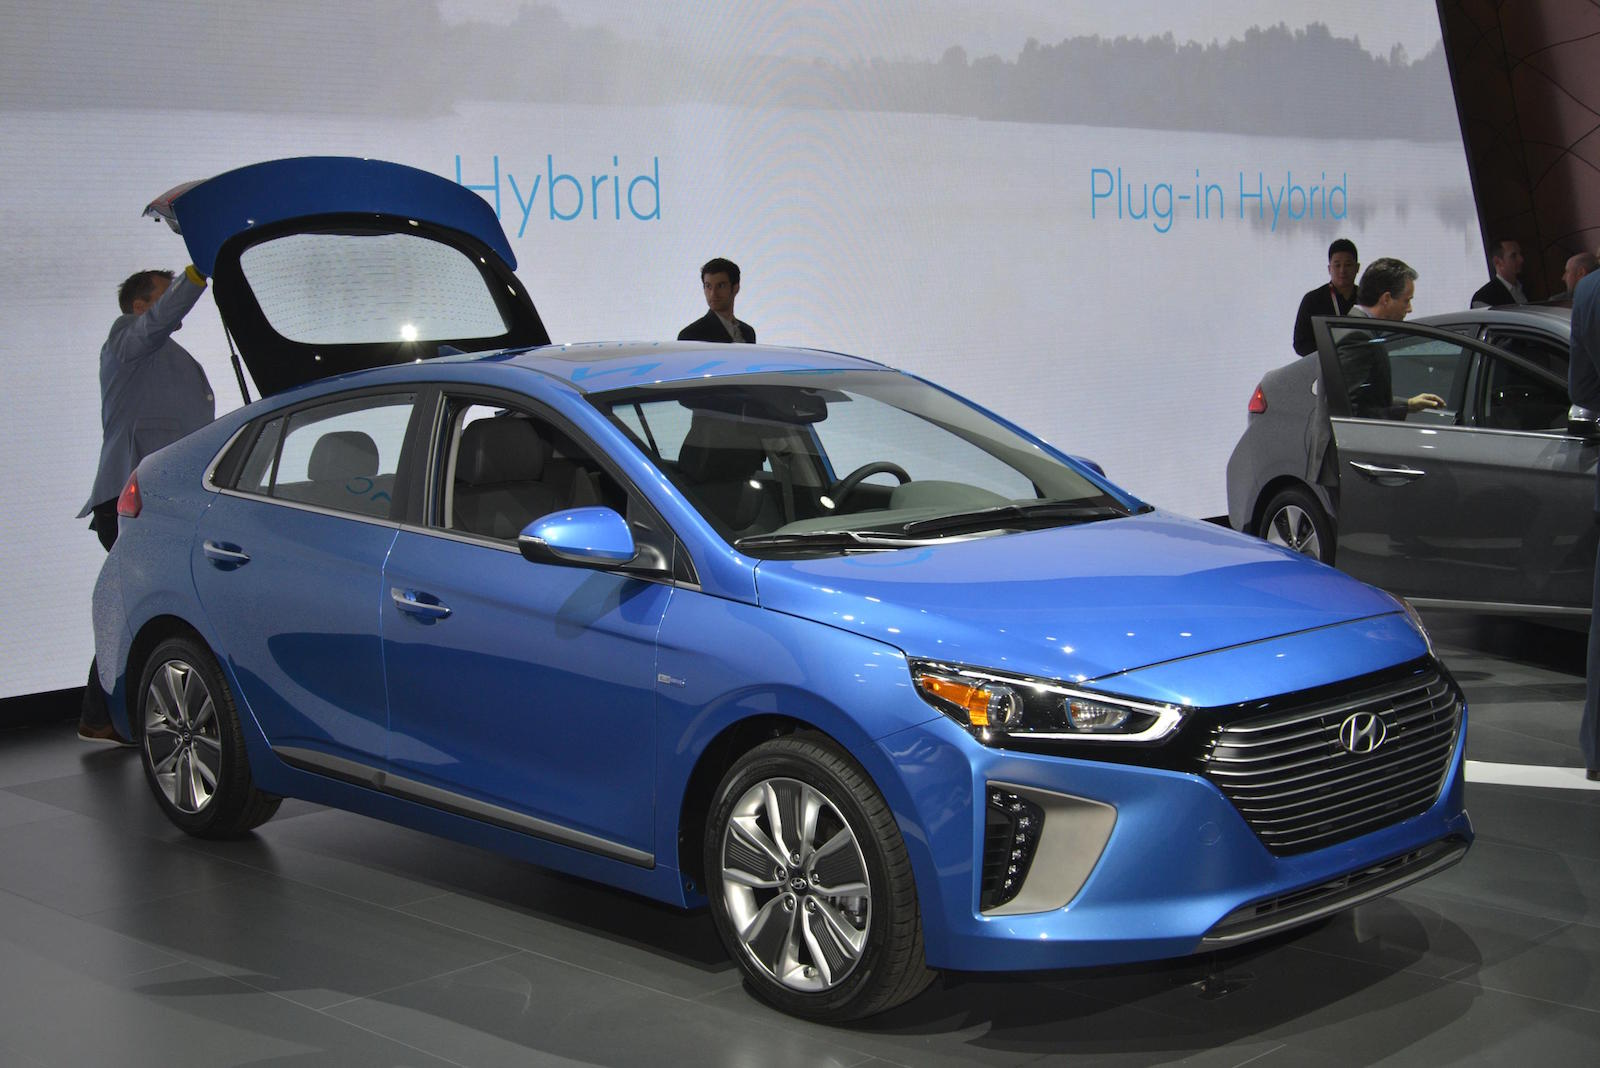 2017 hyundai ioniq debuts in ny 110 mile electric range 25 plus for plug in live photos. Black Bedroom Furniture Sets. Home Design Ideas